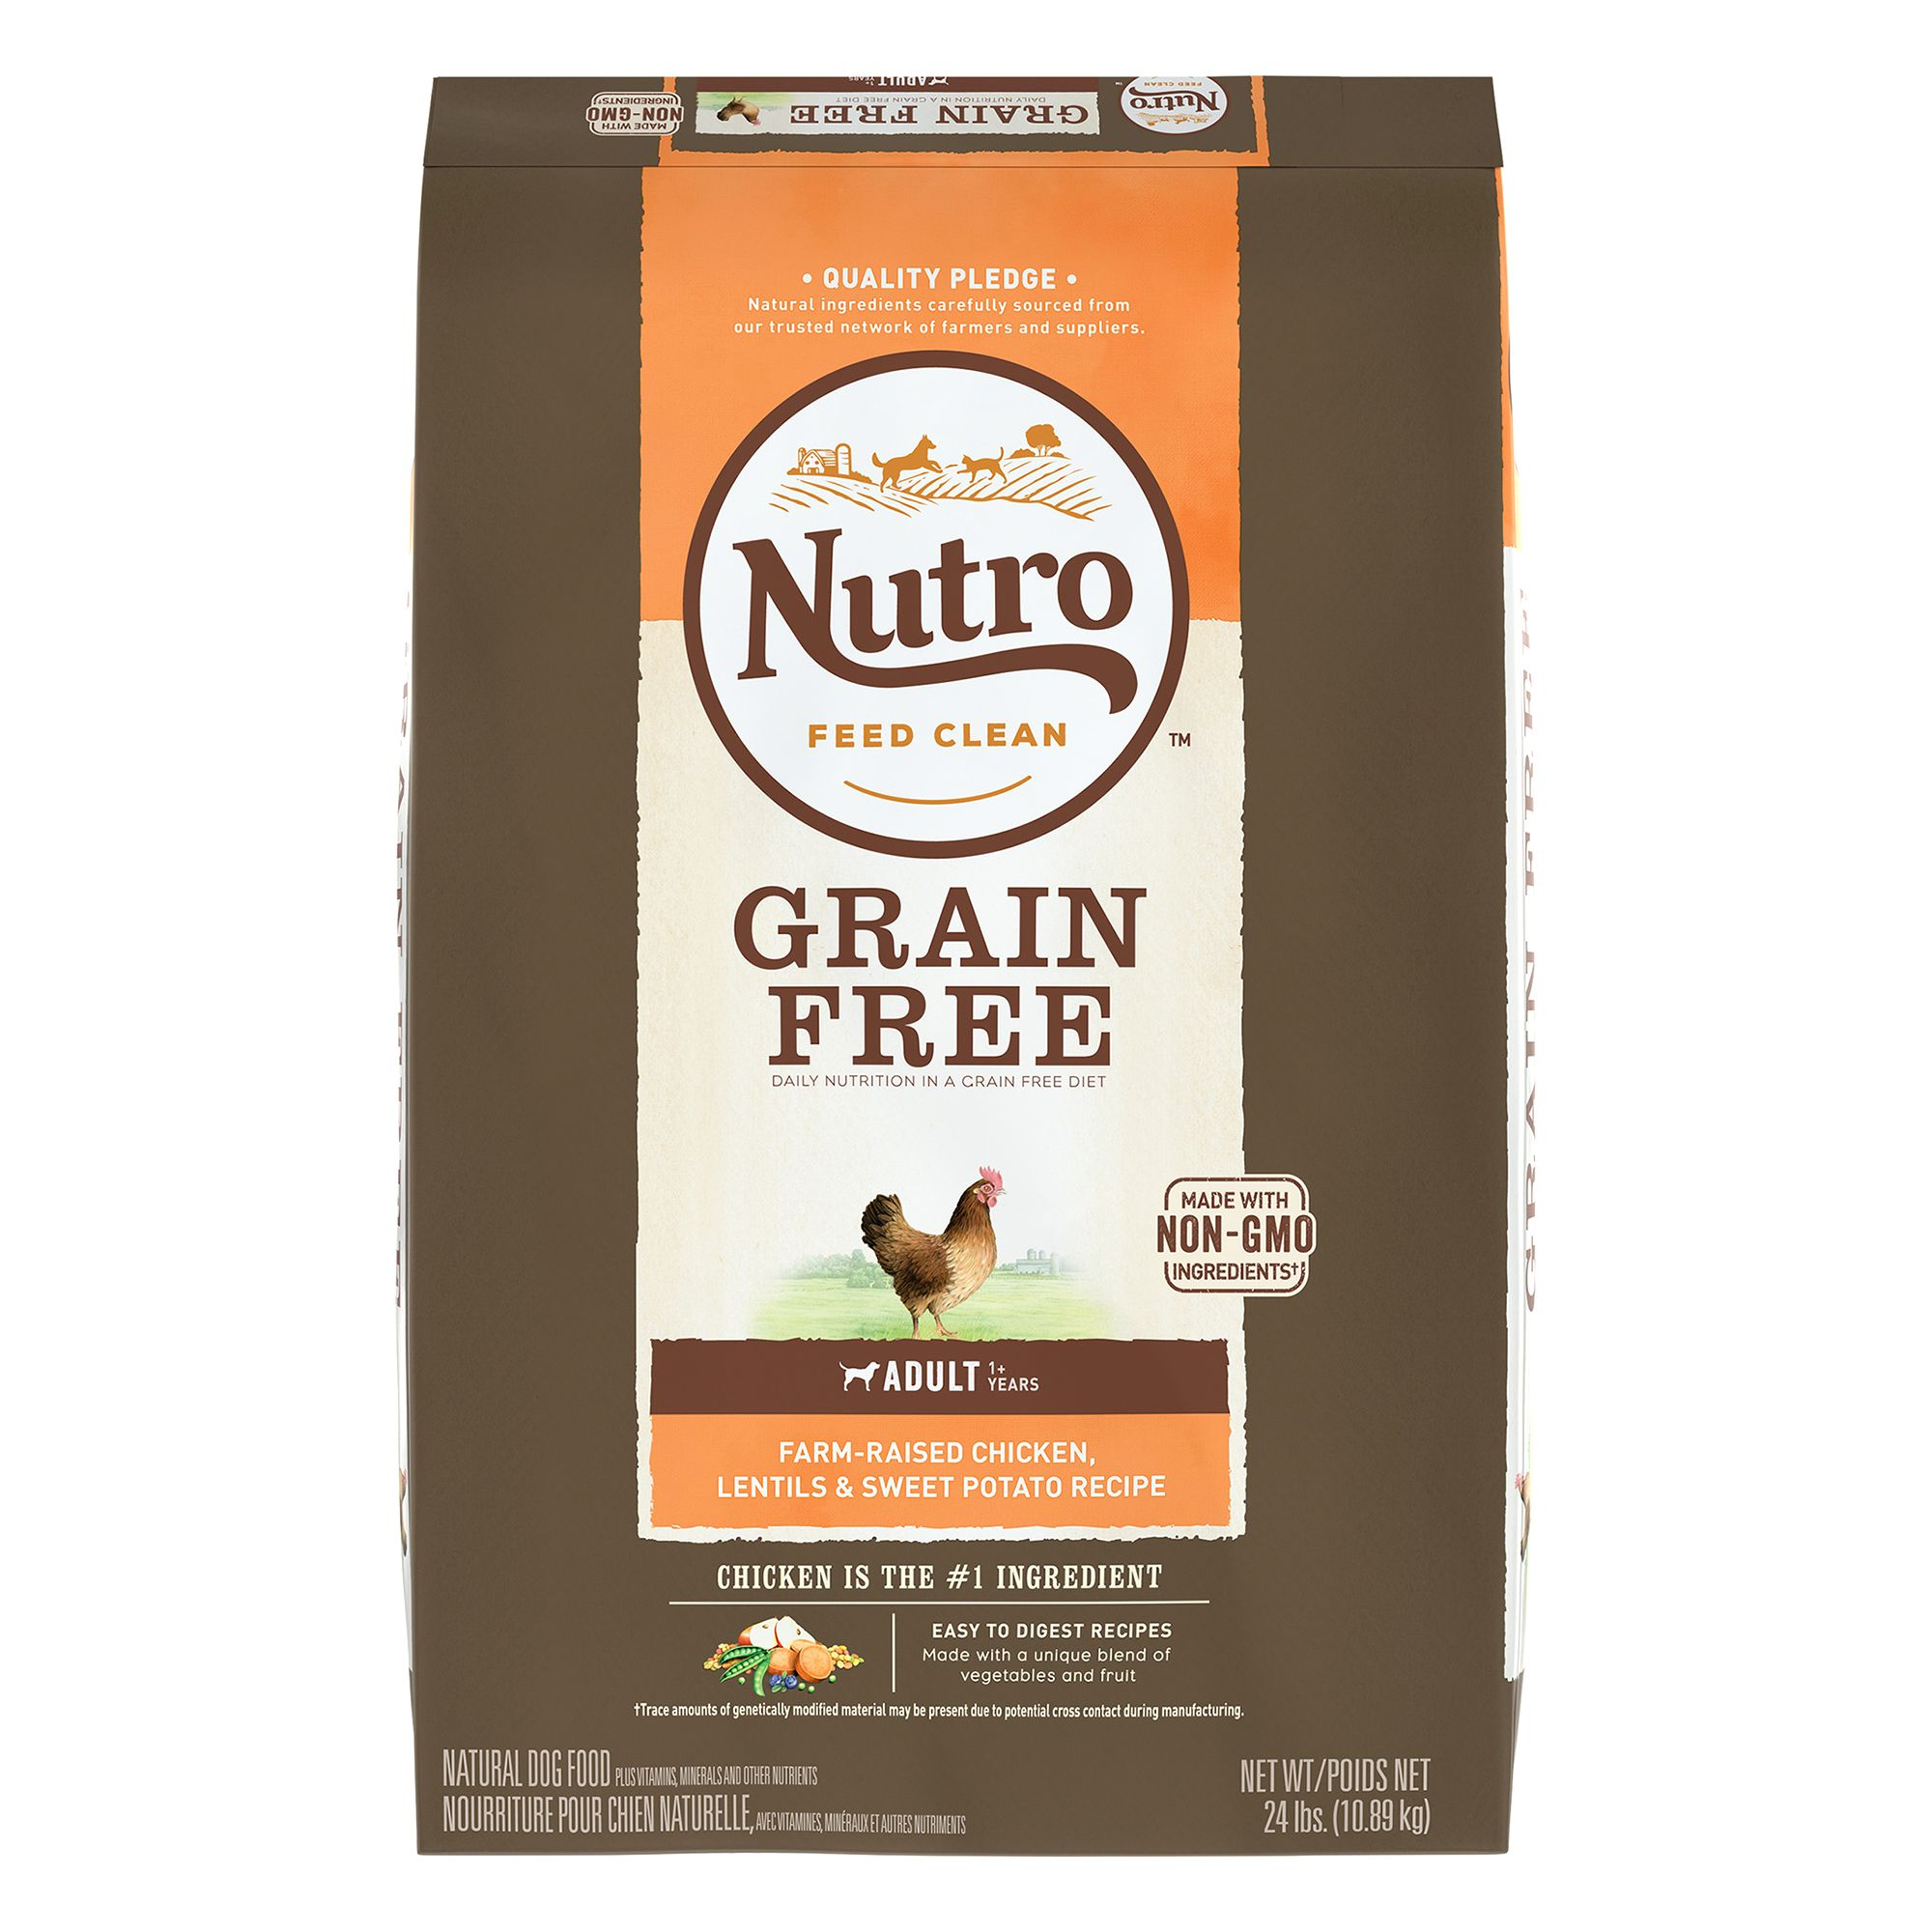 Nutro Grain Free Adult Dog Food - Natural, Non-GMO, Chicken, Lentils and Sweet Potato size: 24 Lb, Kibble 5246488